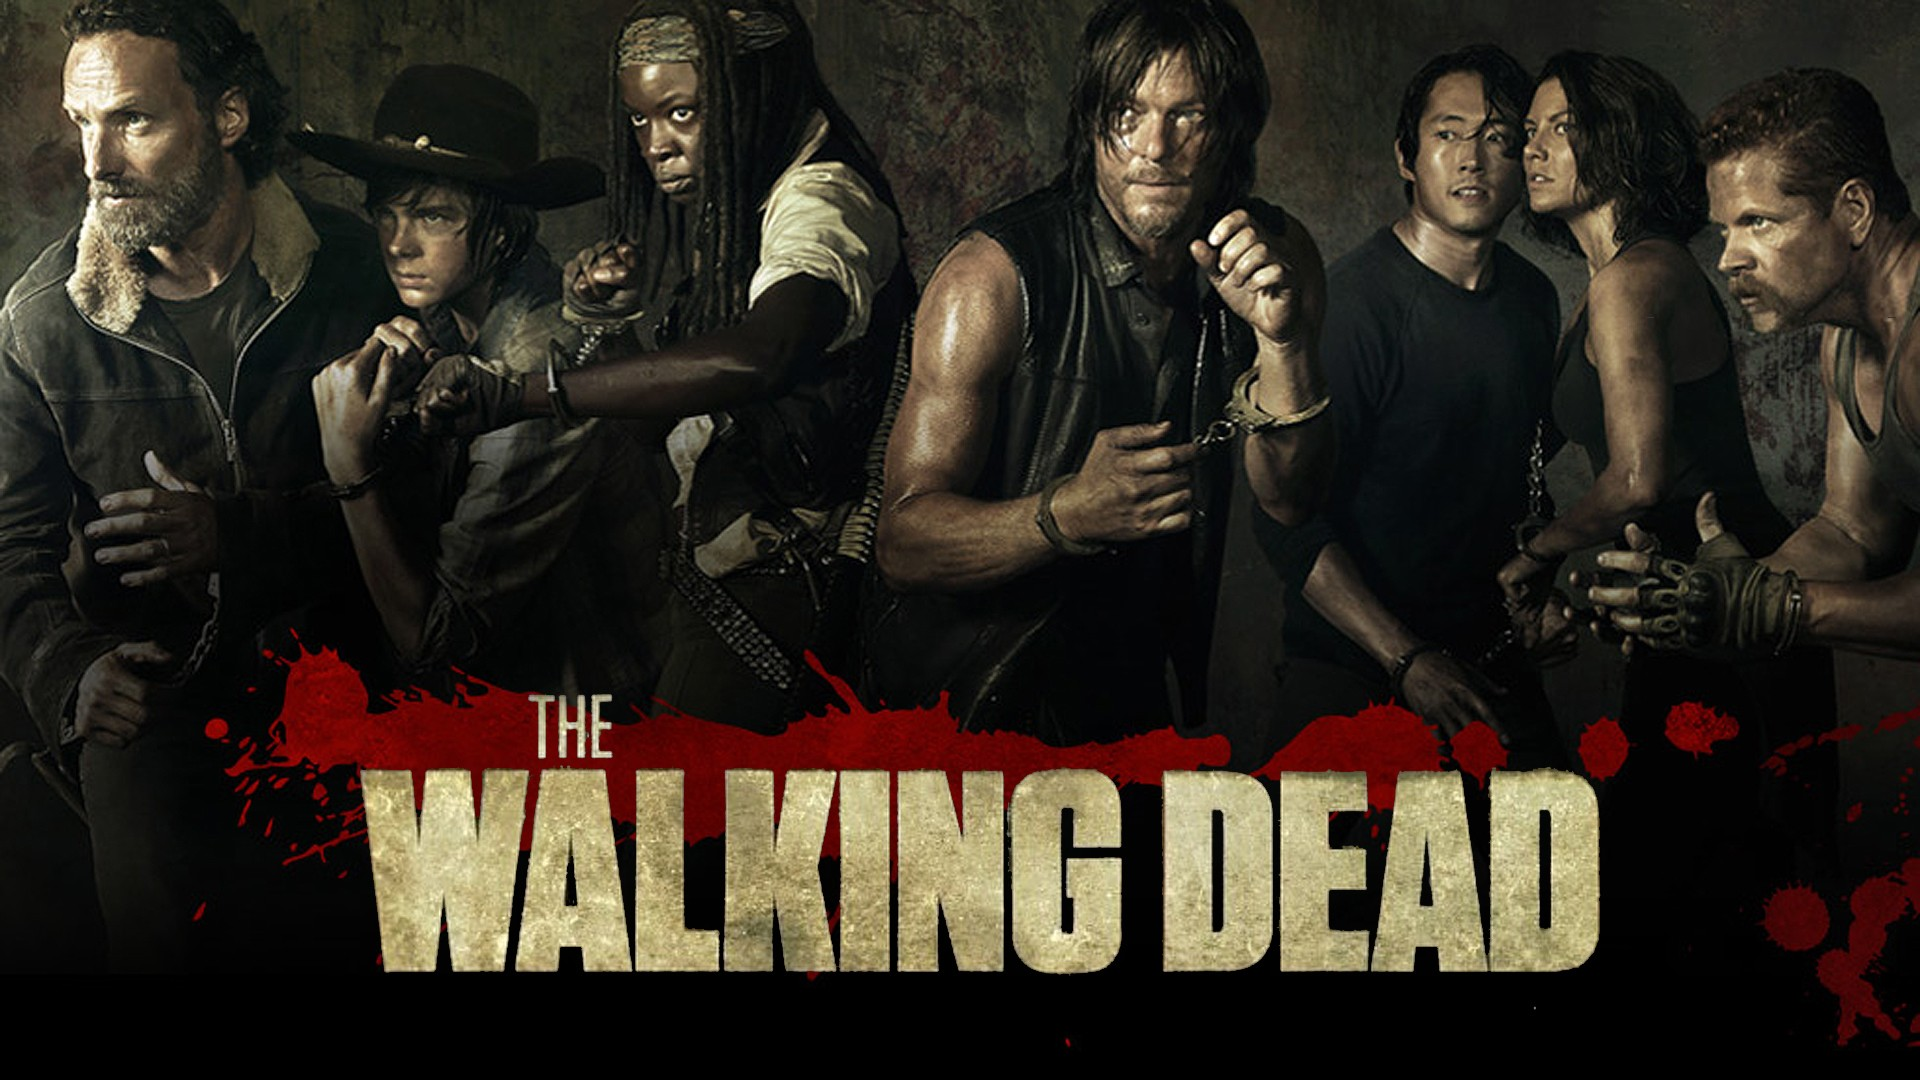 The walking dead wallpaper 13 voltagebd Gallery